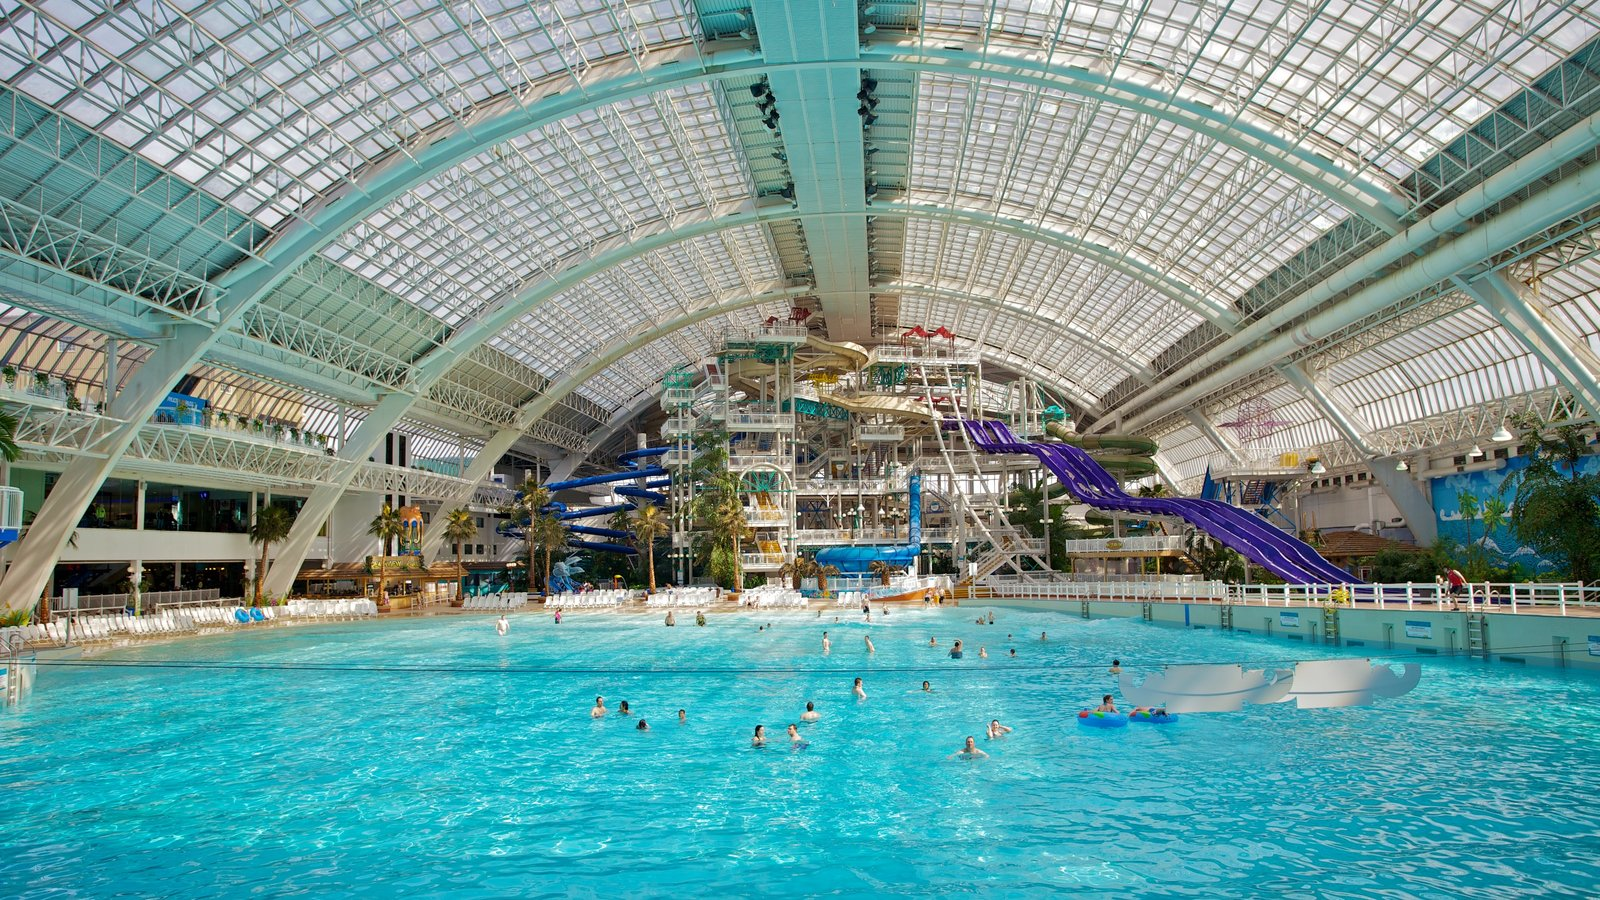 West Edmonton Mall featuring interior views, a pool and swimming